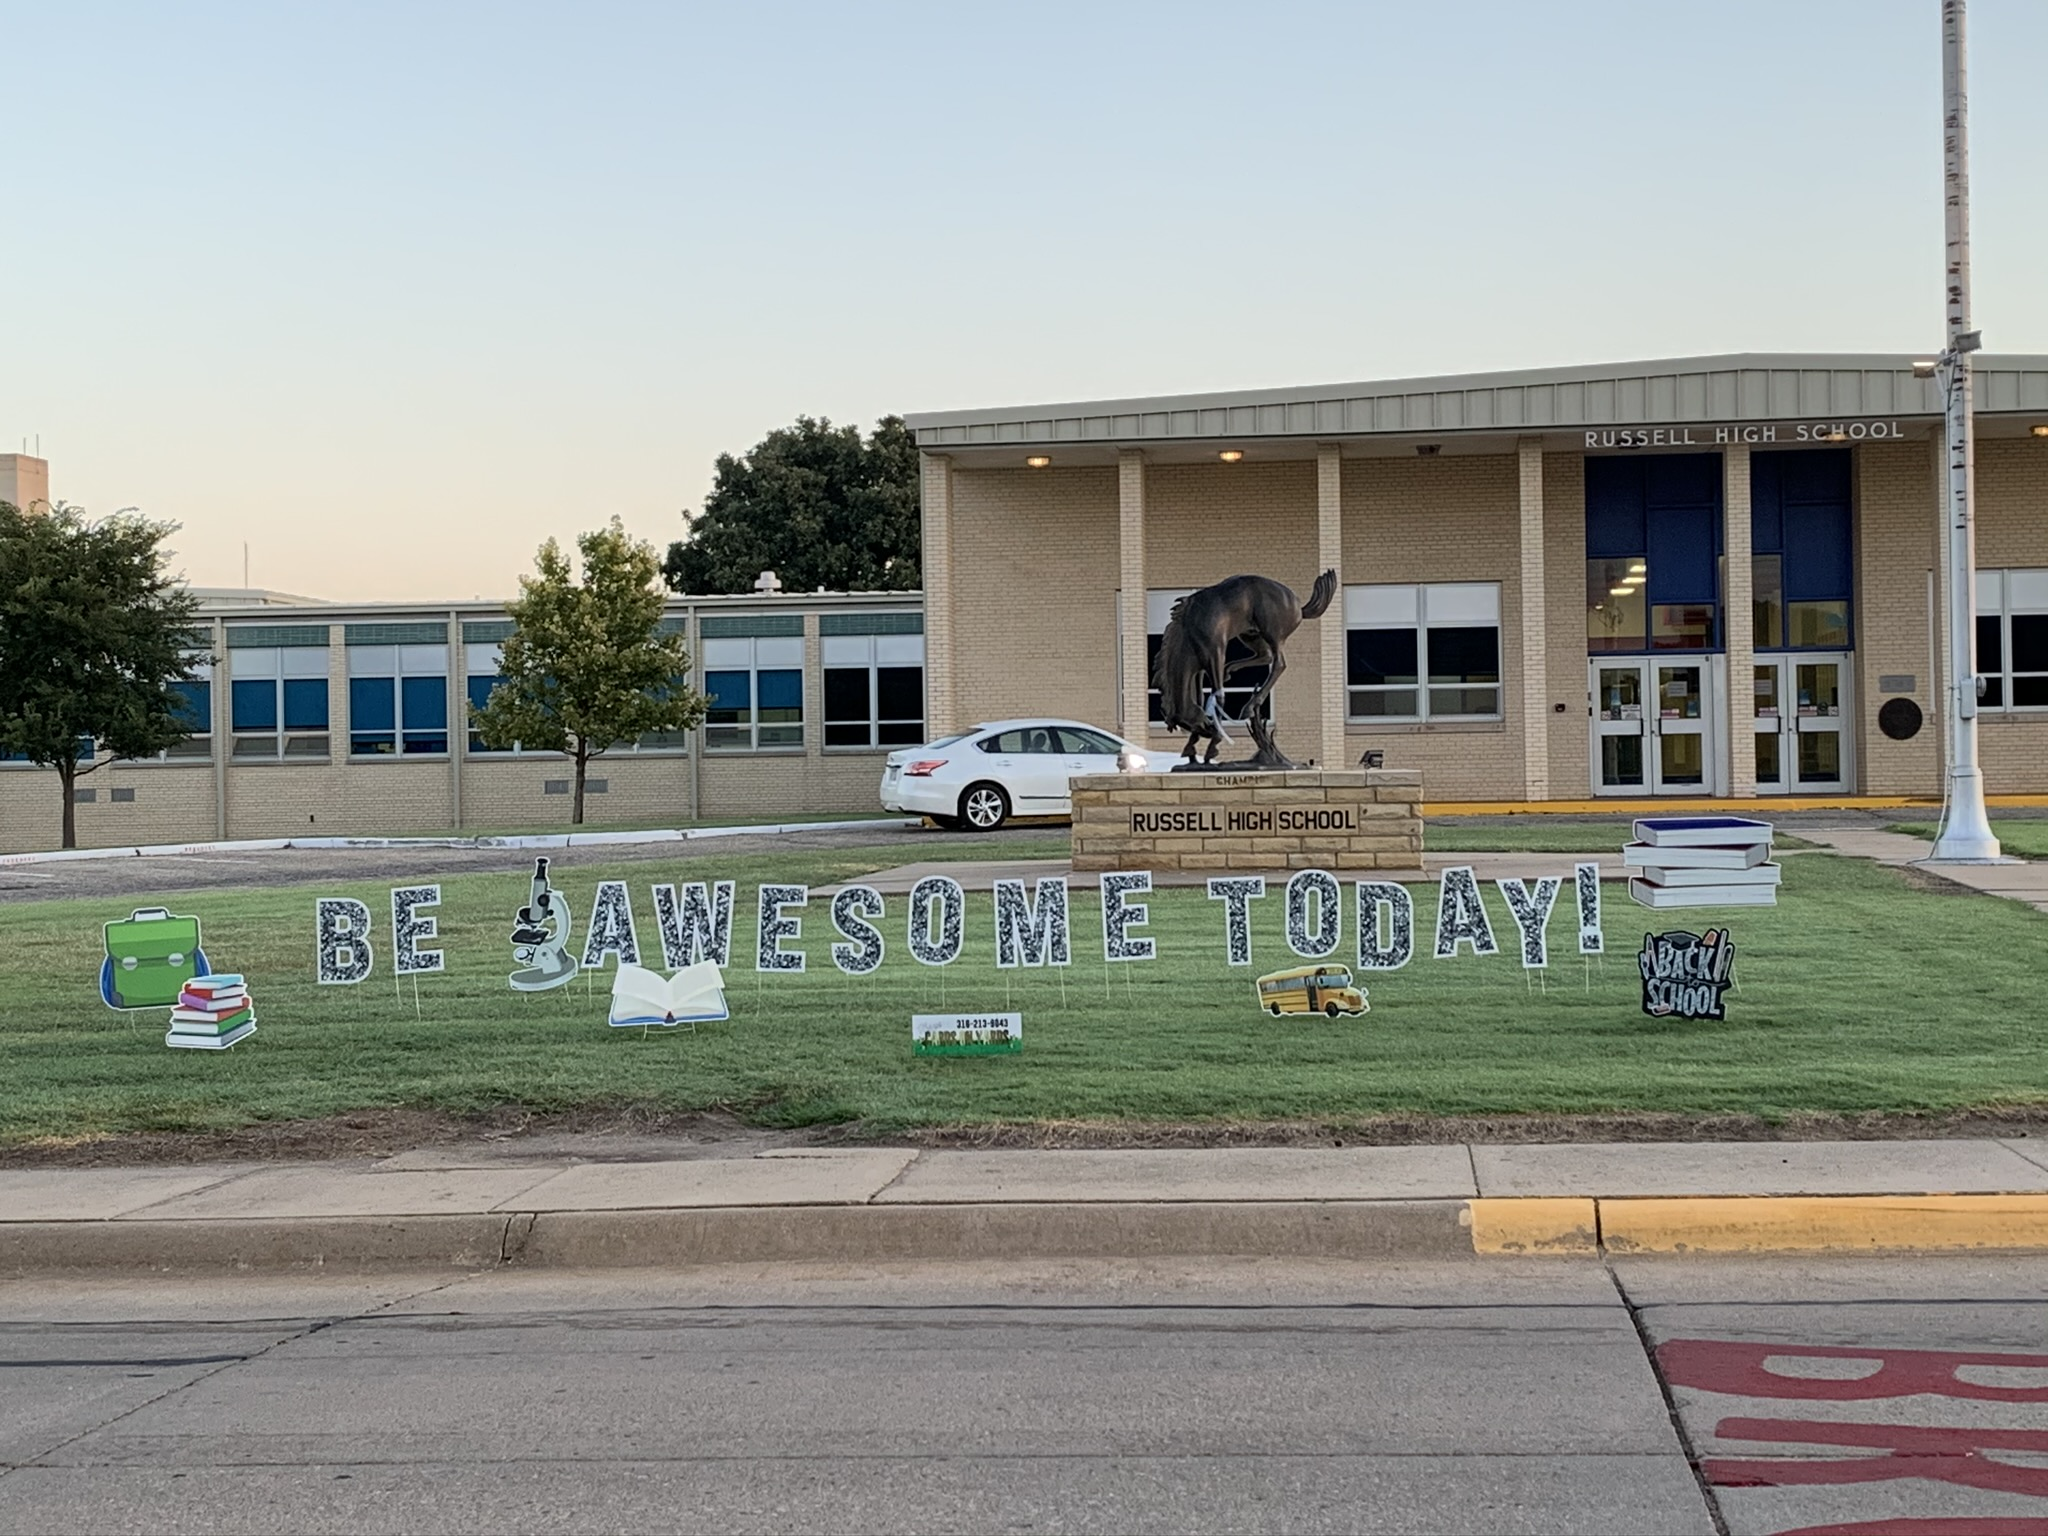 Be Awesome Today at RHS